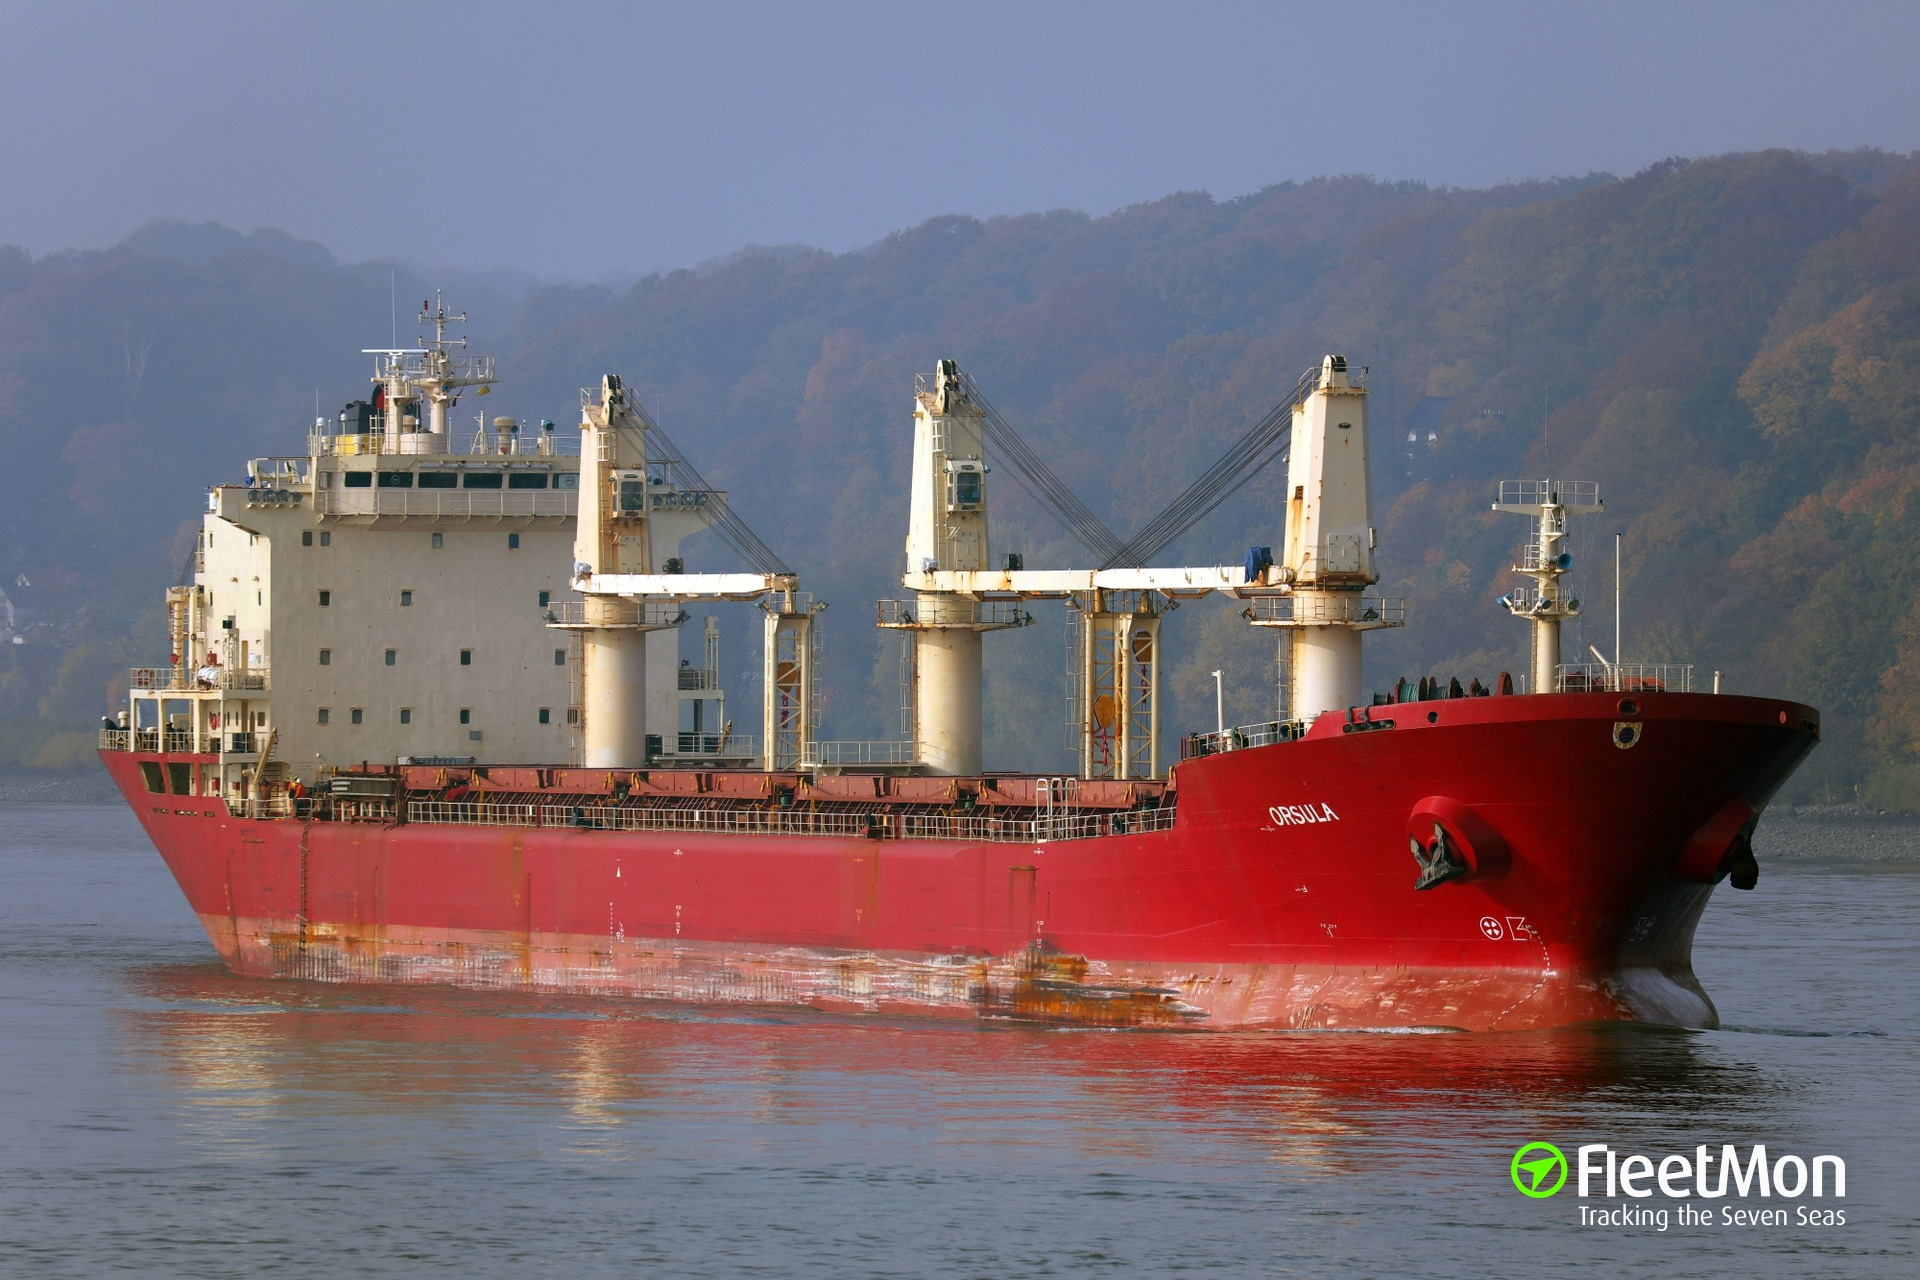 Bulk carrier Orsula salvage racing against time